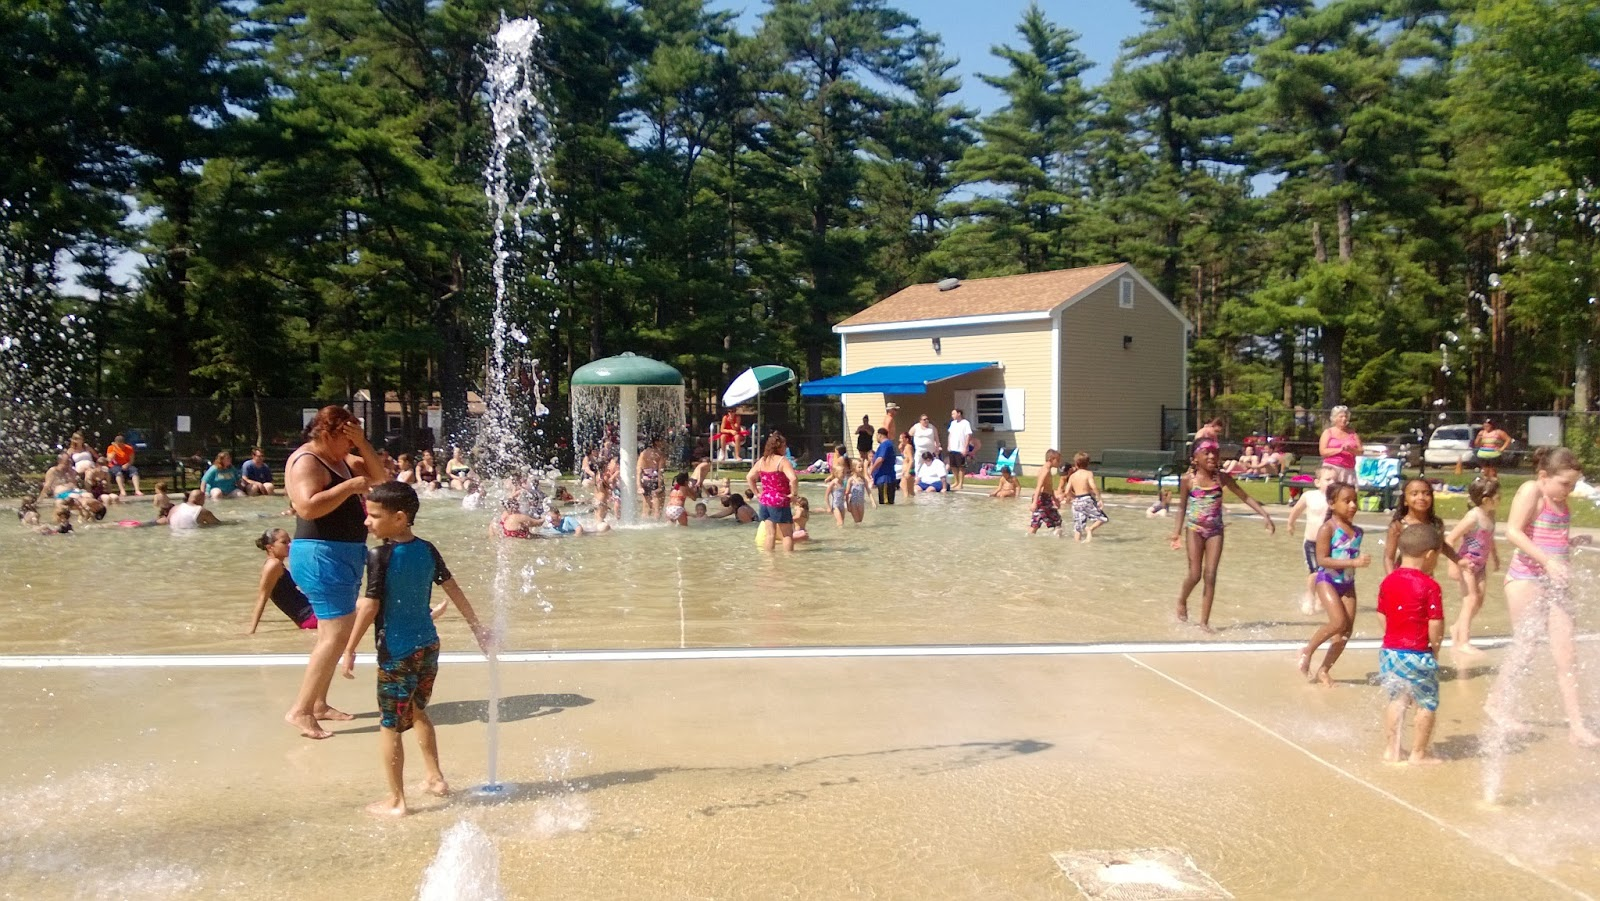 The Busy Giffs Assonet Freetown State Park Splash Pad